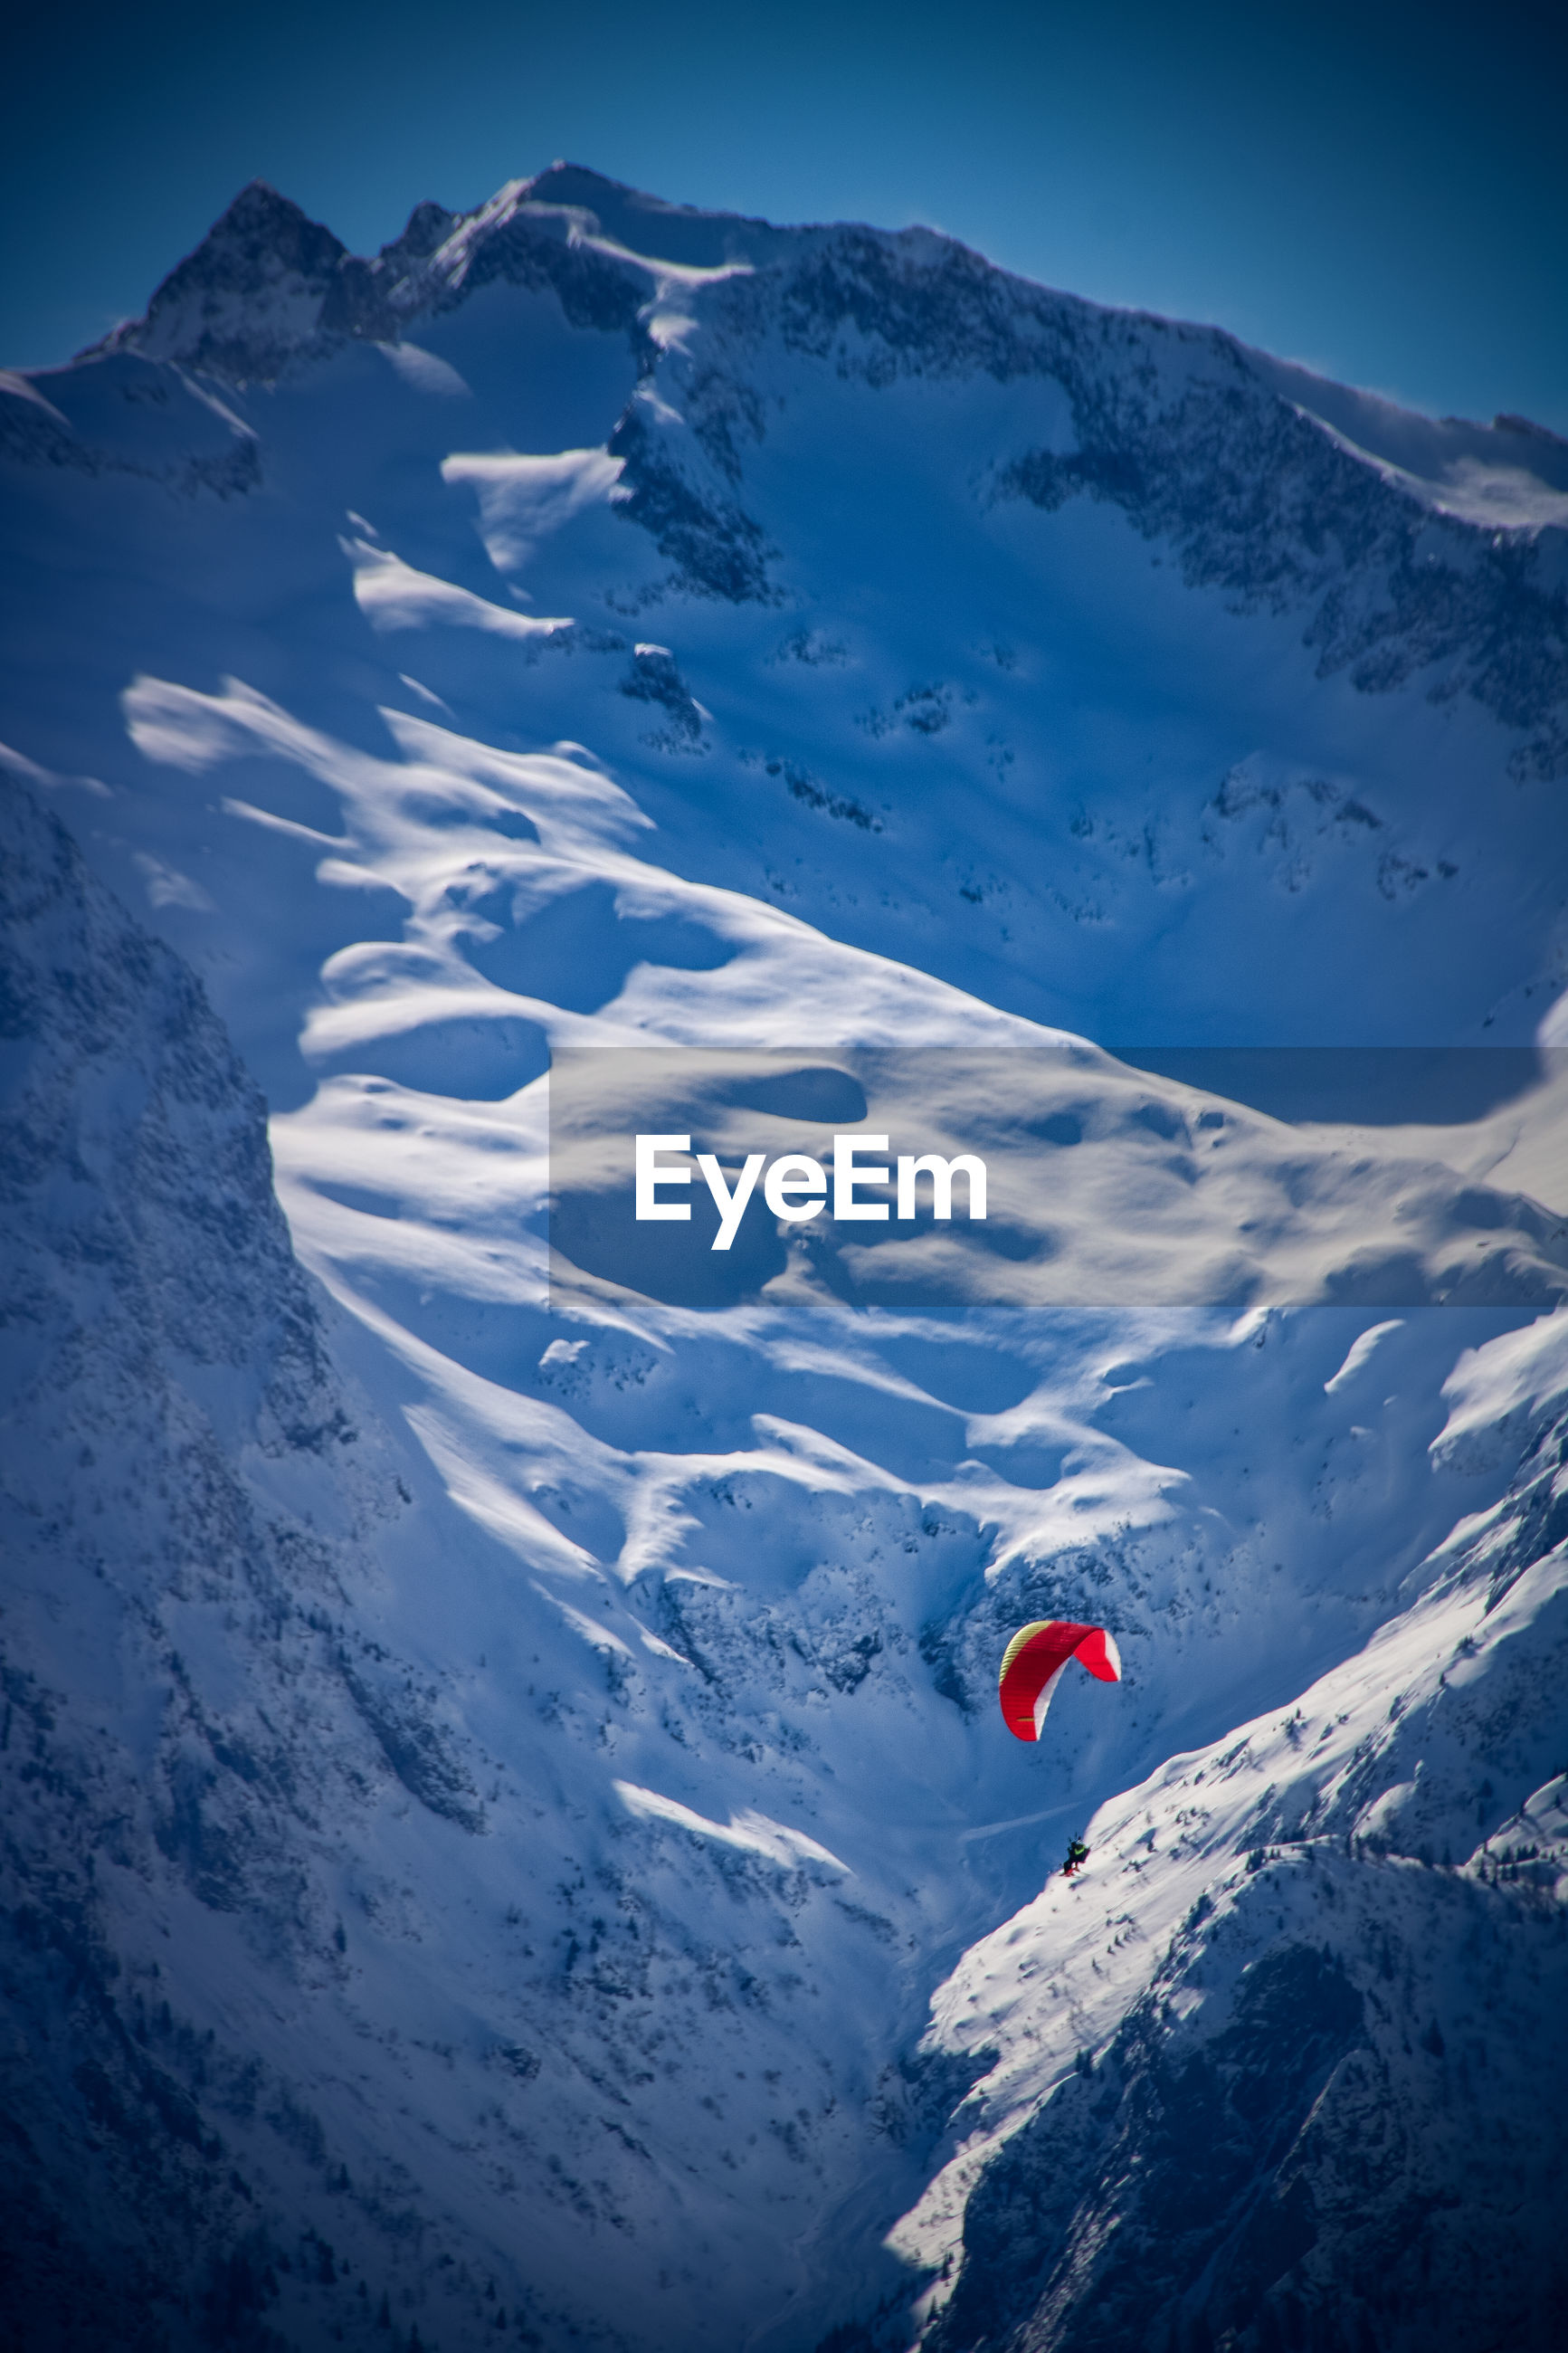 High angle view of person paragliding amidst snowcapped mountain